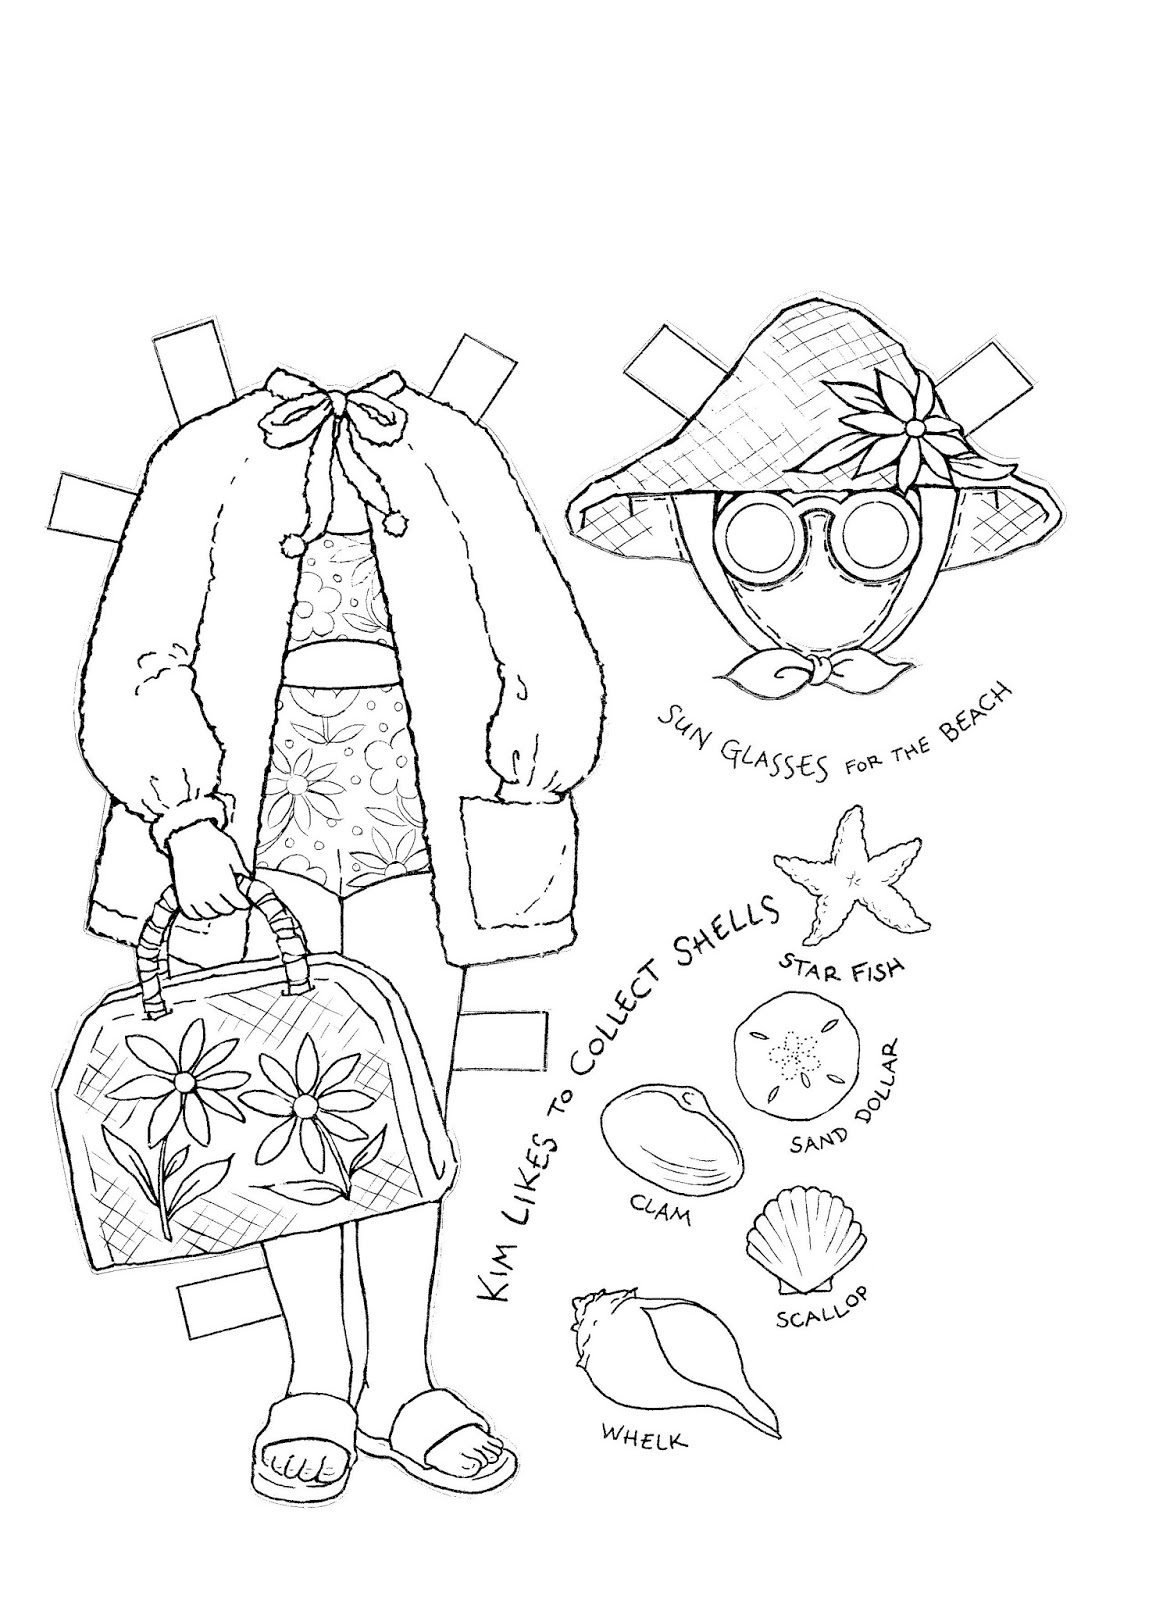 Mary Engelbreit Halloween Coloring Page Coloring Pages Engelbreit Coloring Pages